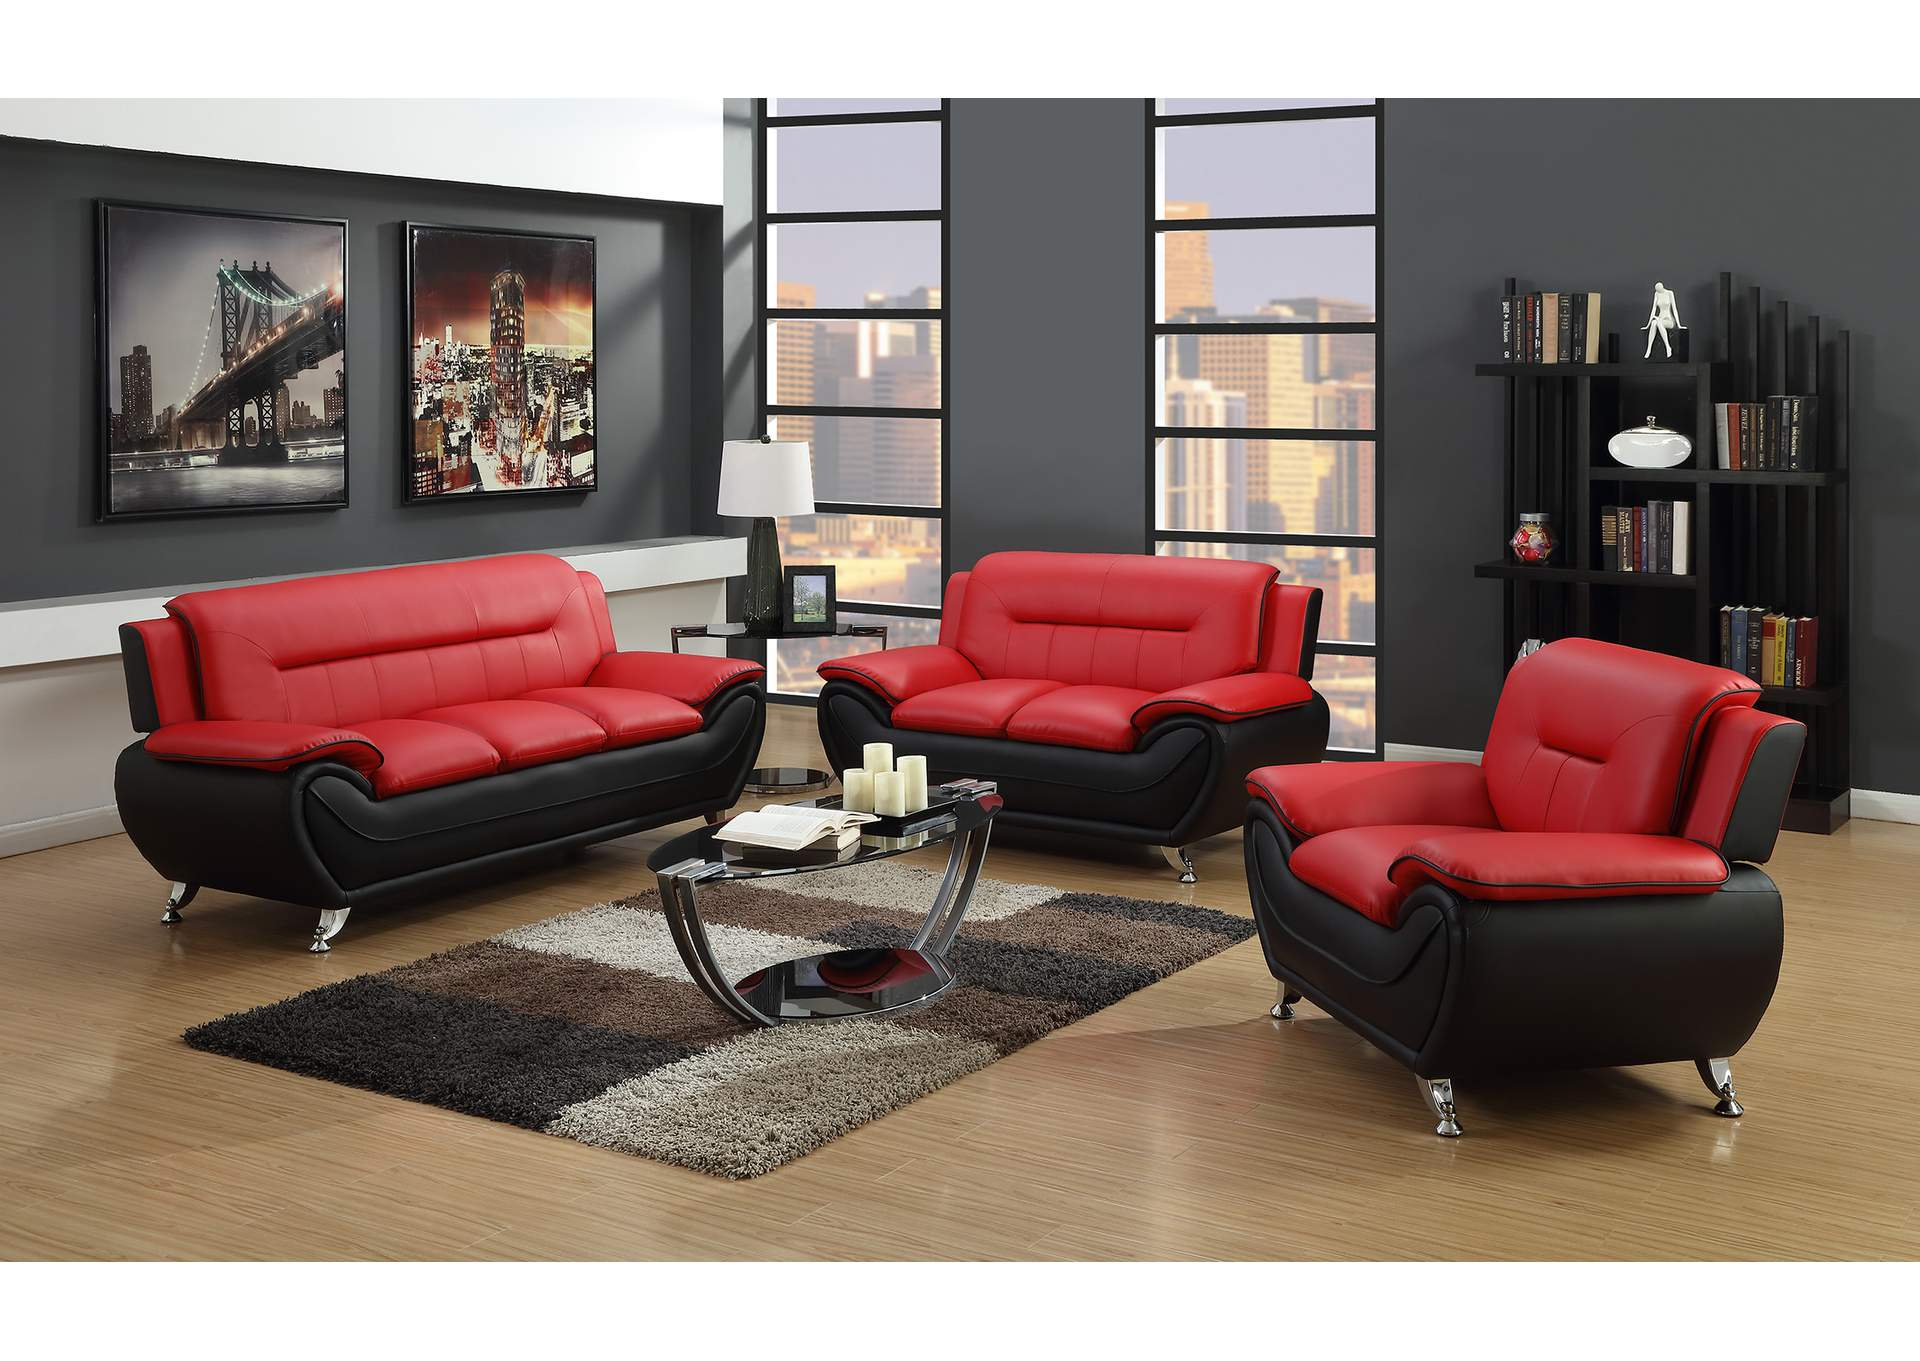 Red on black sofa loveseat chairglobal trading